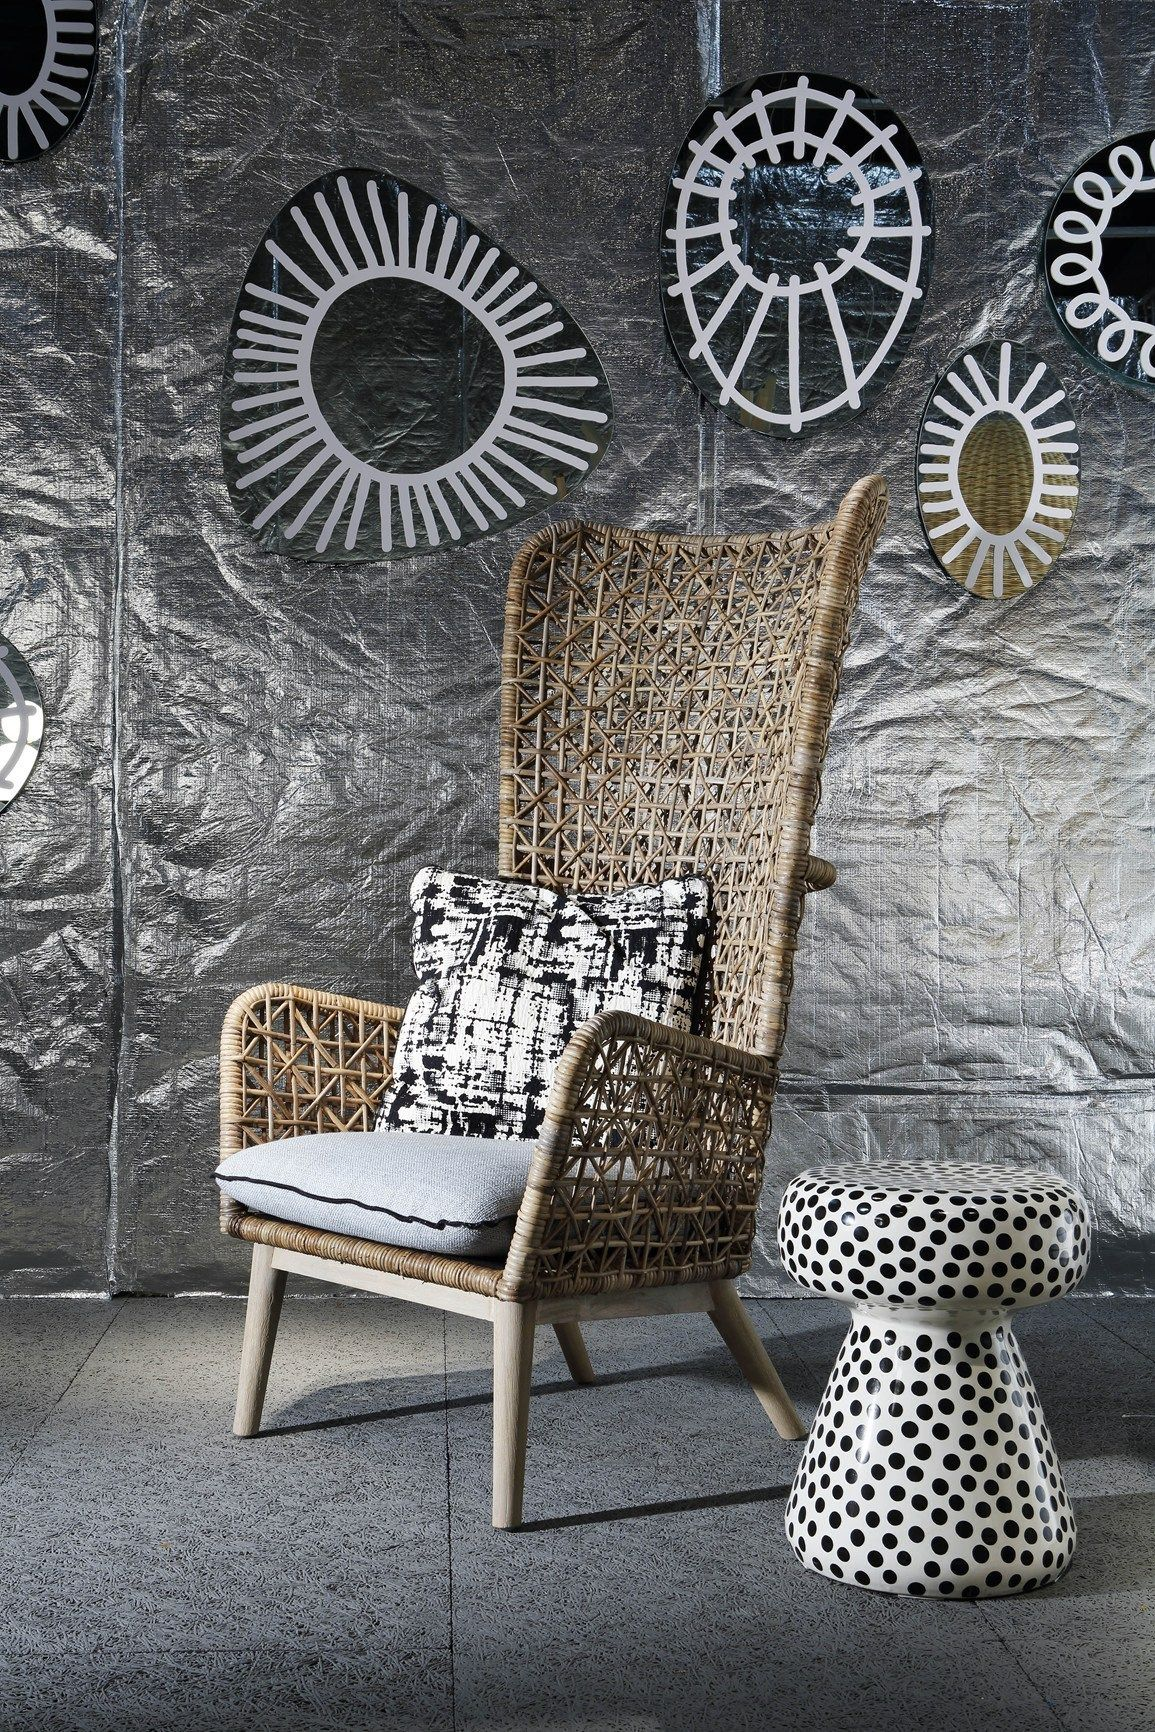 Gervasoni with paola navone for Baxter paola navone